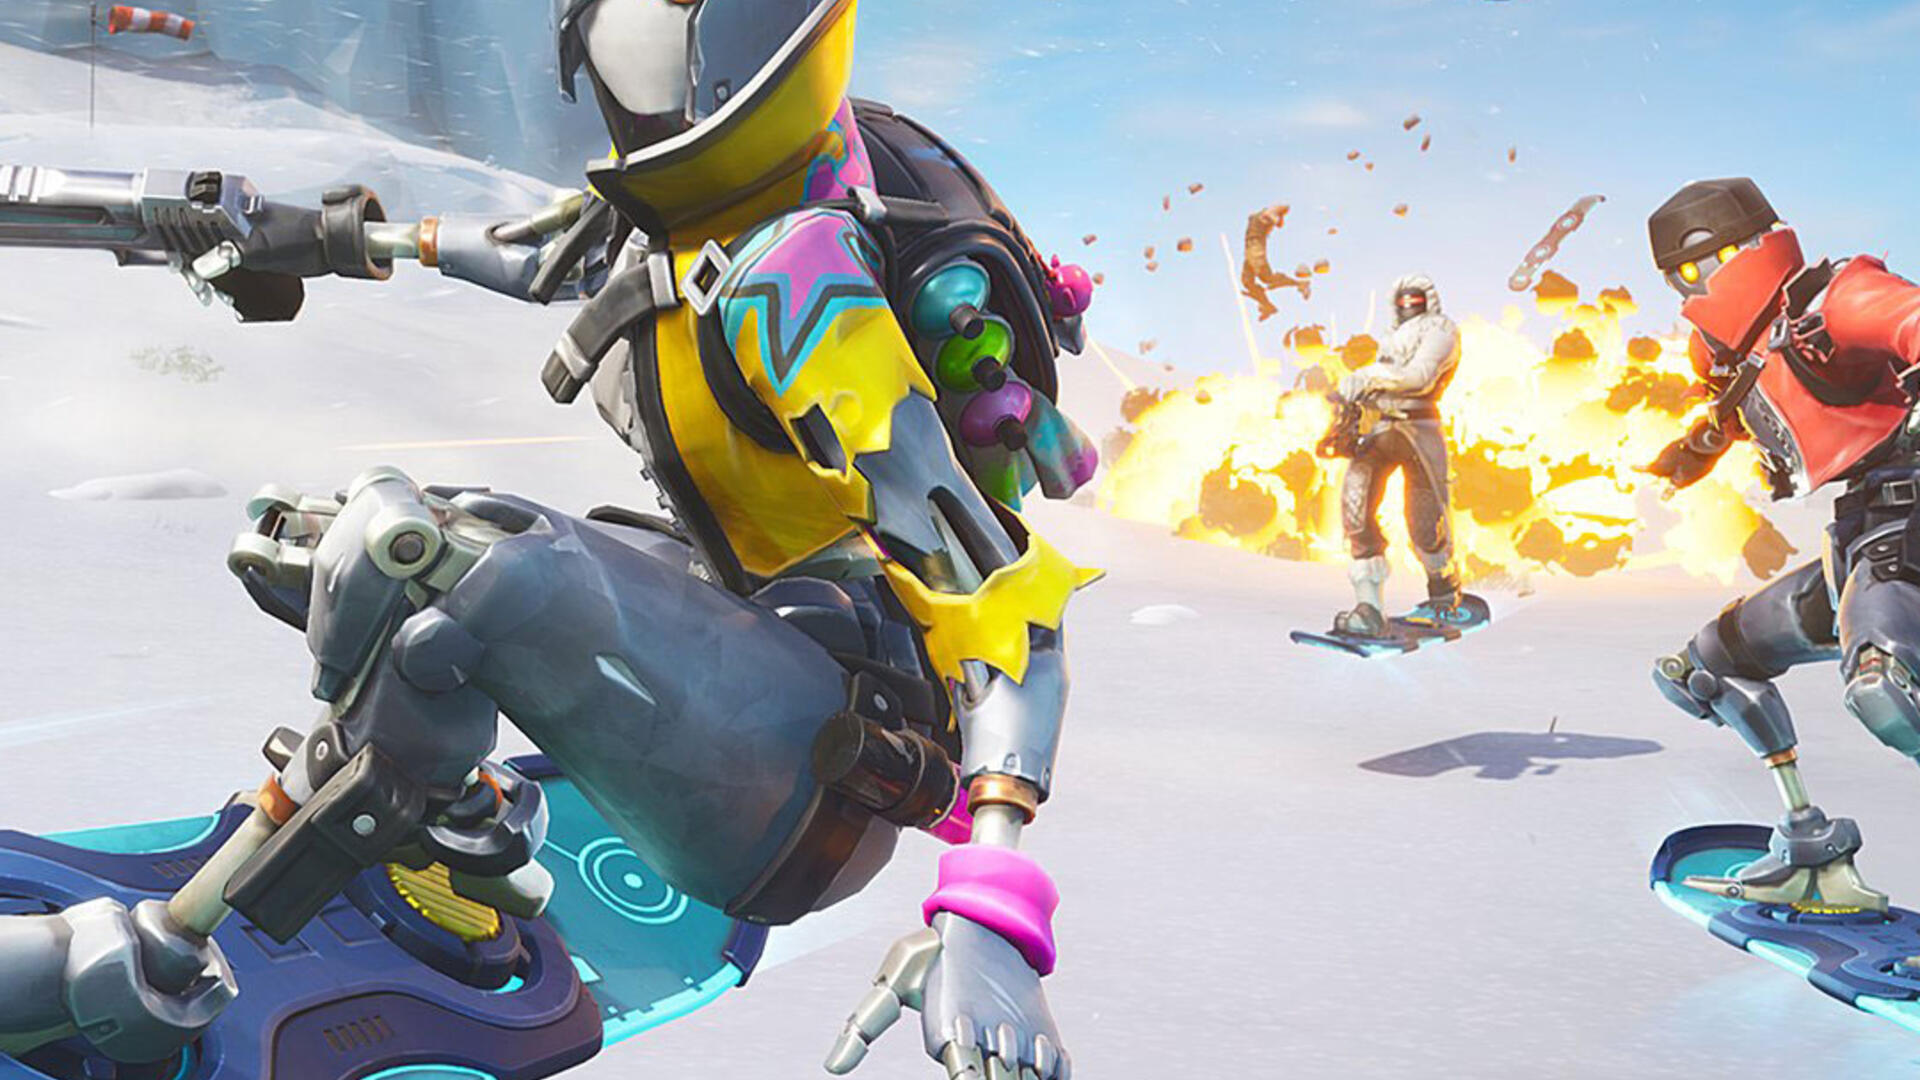 Fortnite Week 5 Challenges - How to Complete All Season 8, Week 5 Battle Pass Challenges